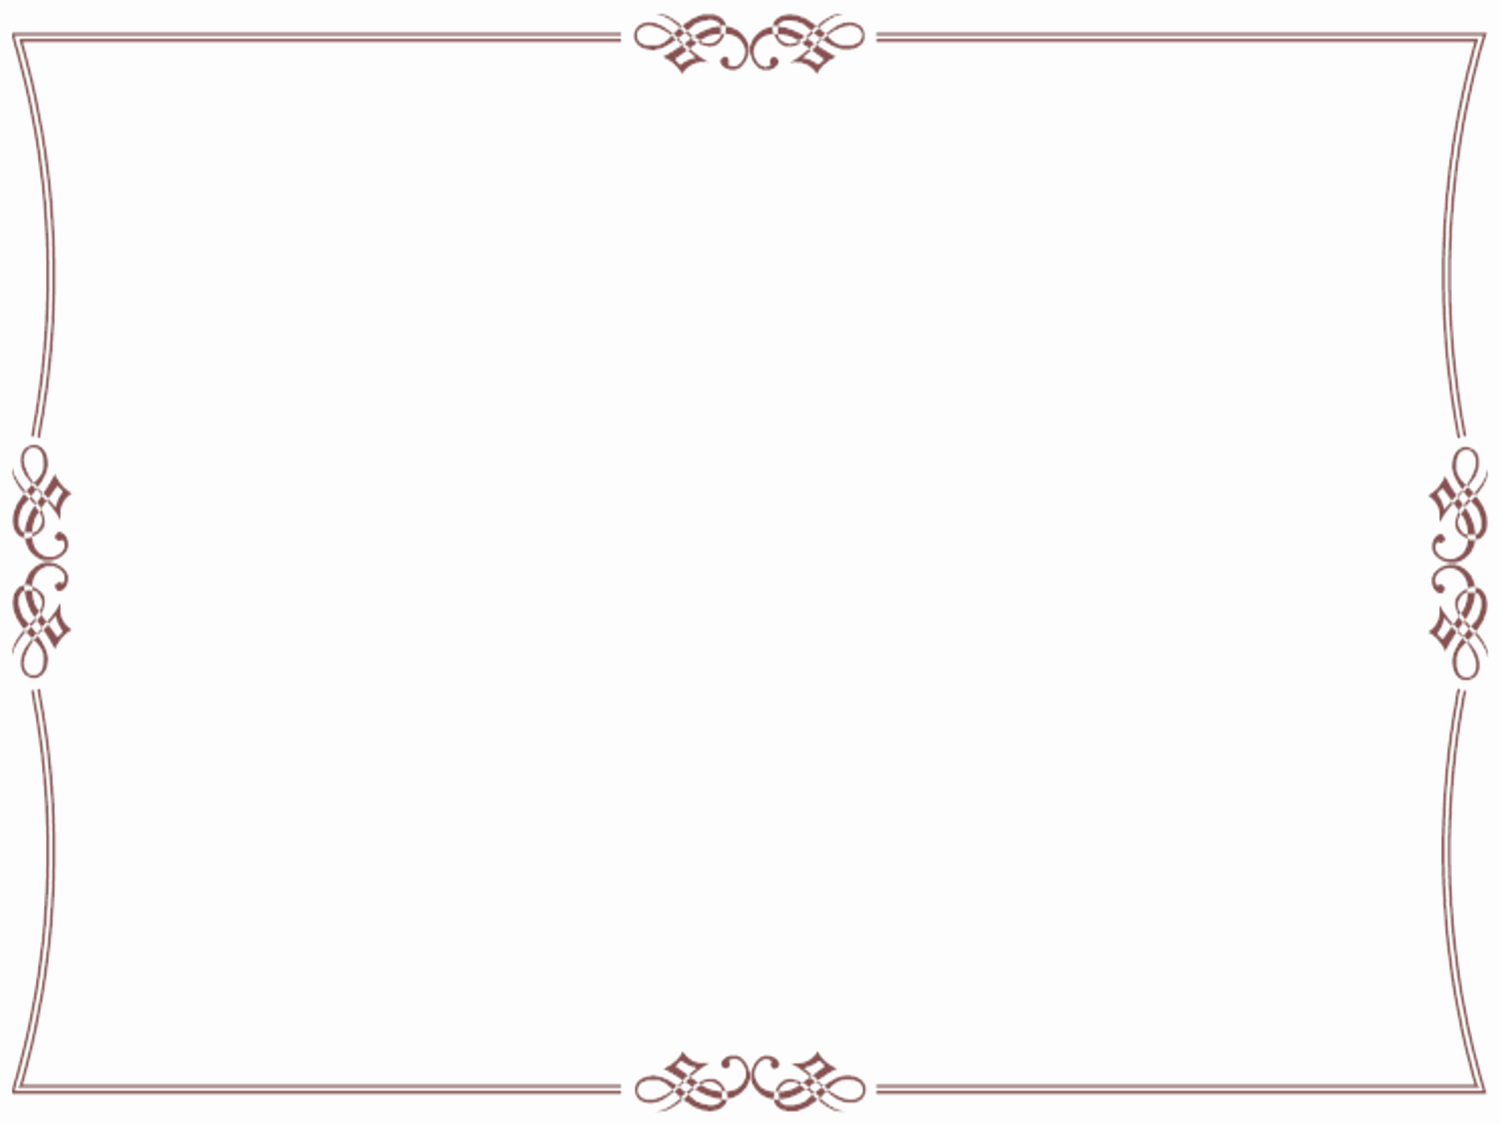 Award Certificate Clip Art New Free Award Certificate Boarder Clipart Png and Cliparts